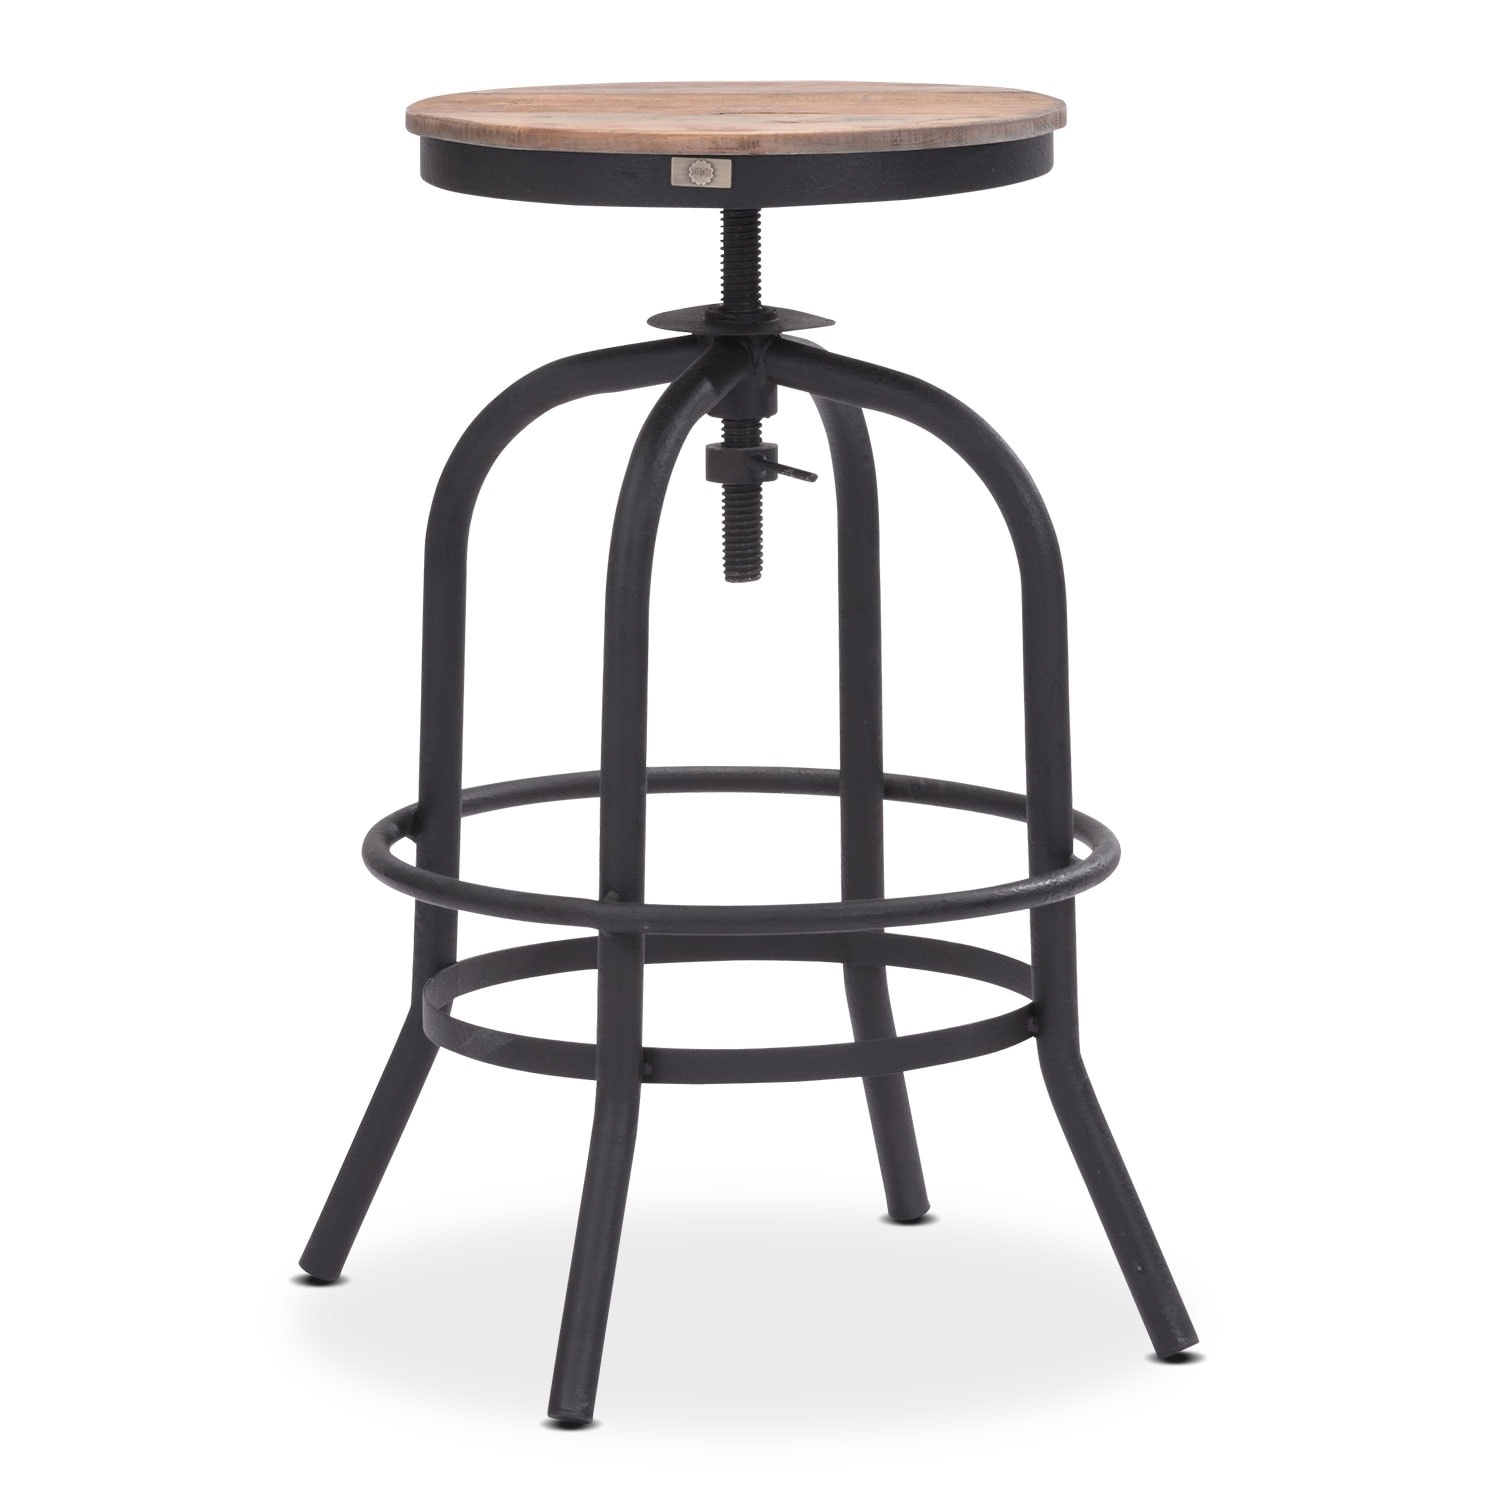 Elston Adjustable Backless Counter Height Stool Antiqued Black Value City Furniture